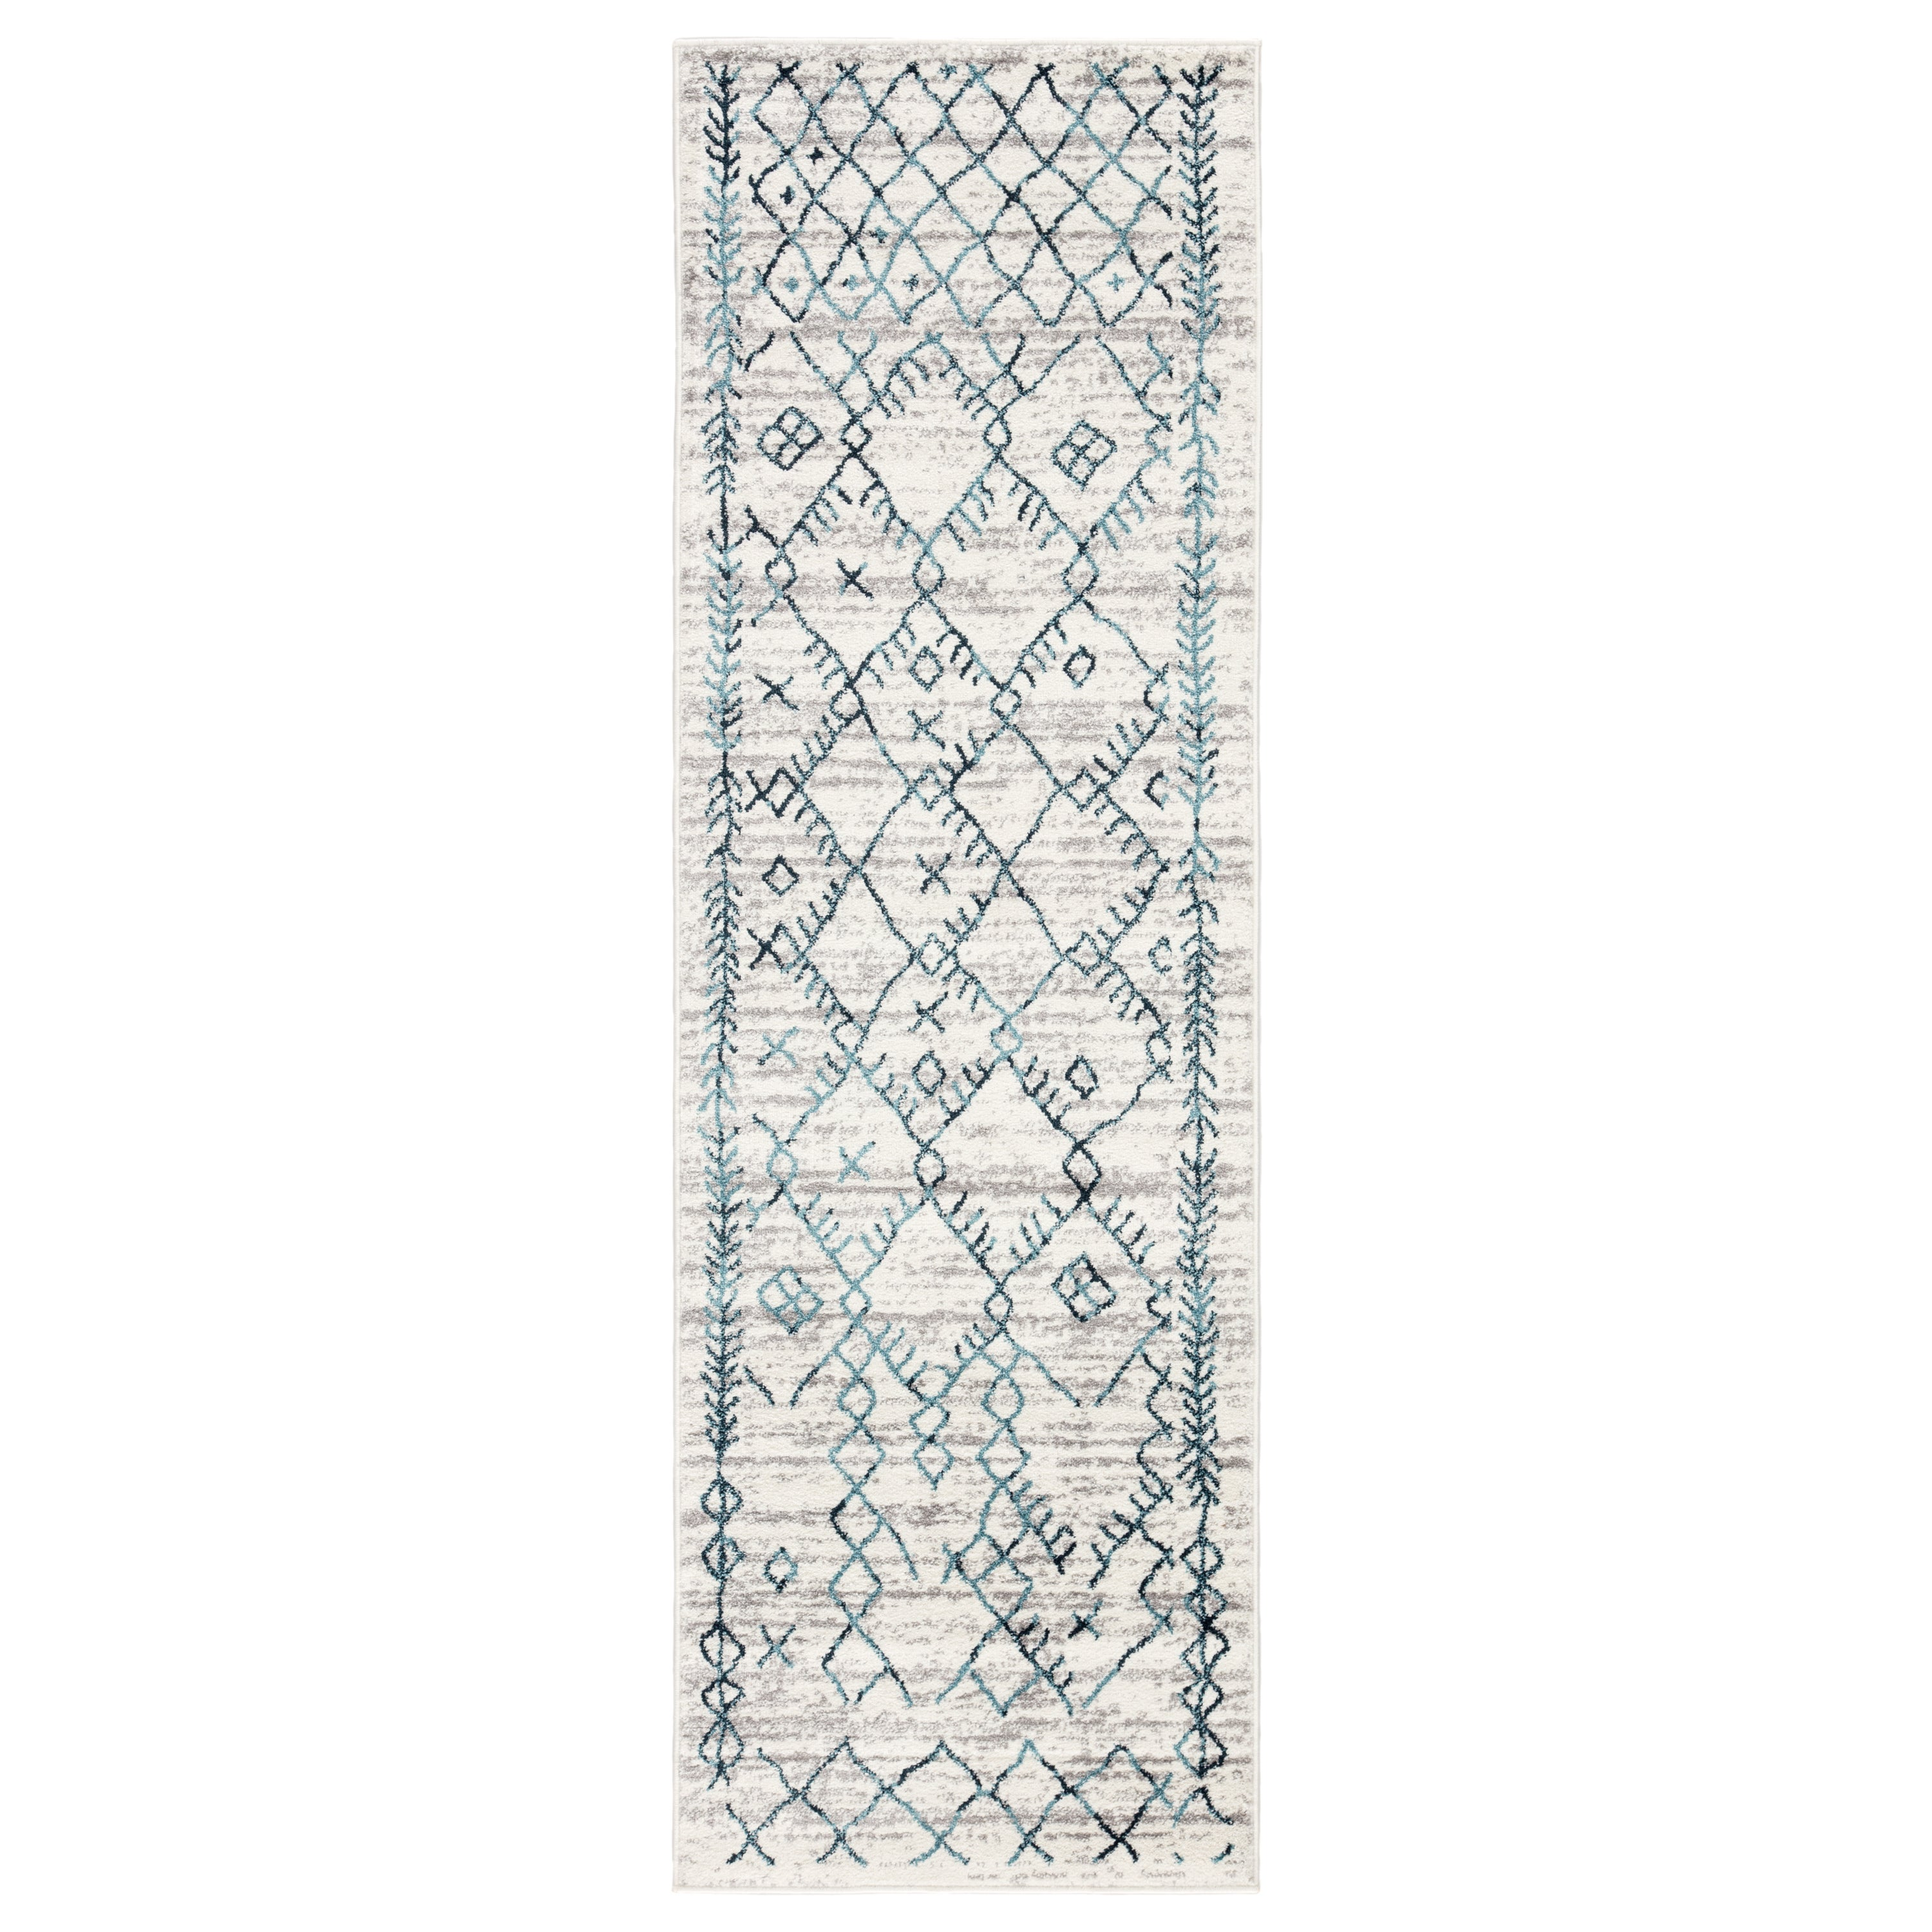 Rectangle Blue Trellis Machine Made Synthetics Persian & Moroccan recommended for Kitchen, Bedroom, Bathroom, Dining Room, Office, Hallway, Living Room